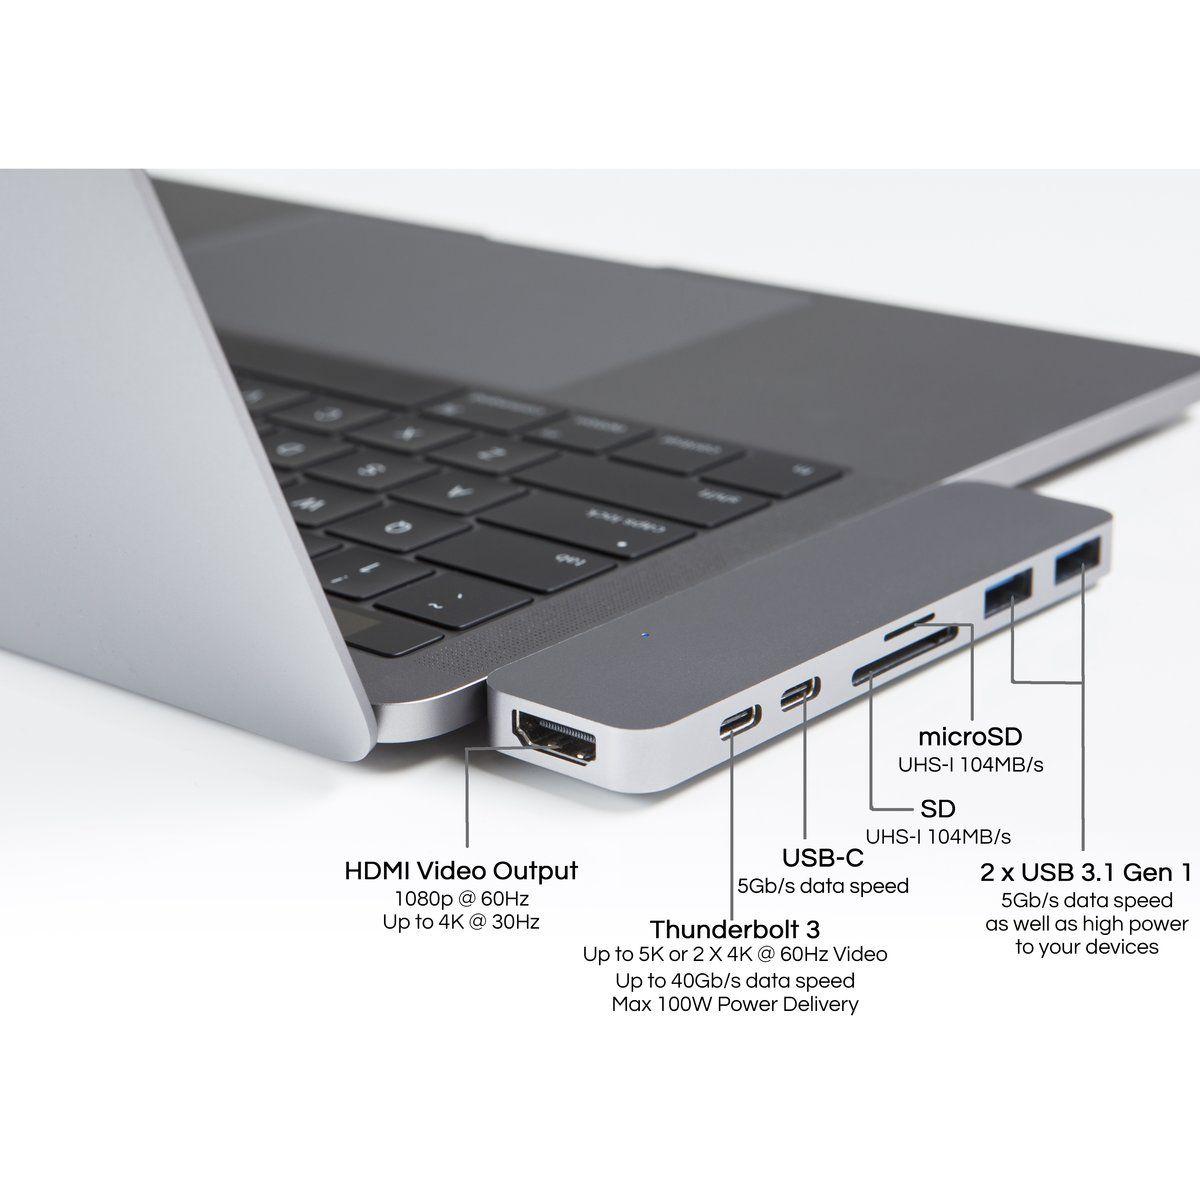 Hyperdrive Duo 7 In 2 Hub For Usb C Macbook Pro 13 15 2016 2017 2018 And Macbook Air 2018 Macbook Pro Macbook Accessories Macbook Pro Accessories